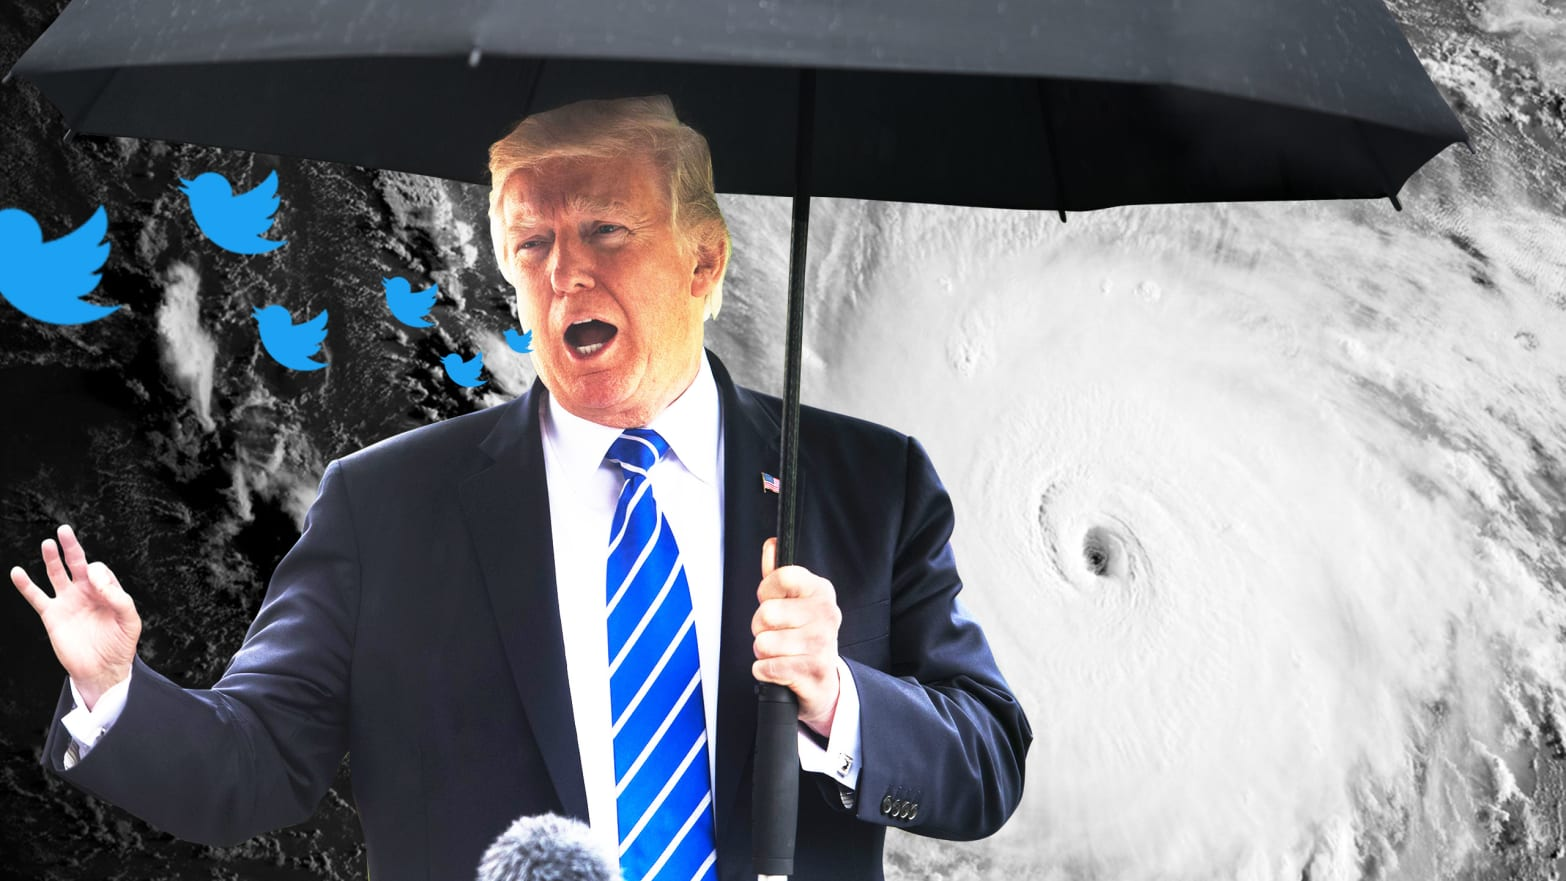 Trump tweets about Hurricanes Harvey and Irma like we're in a TV show.